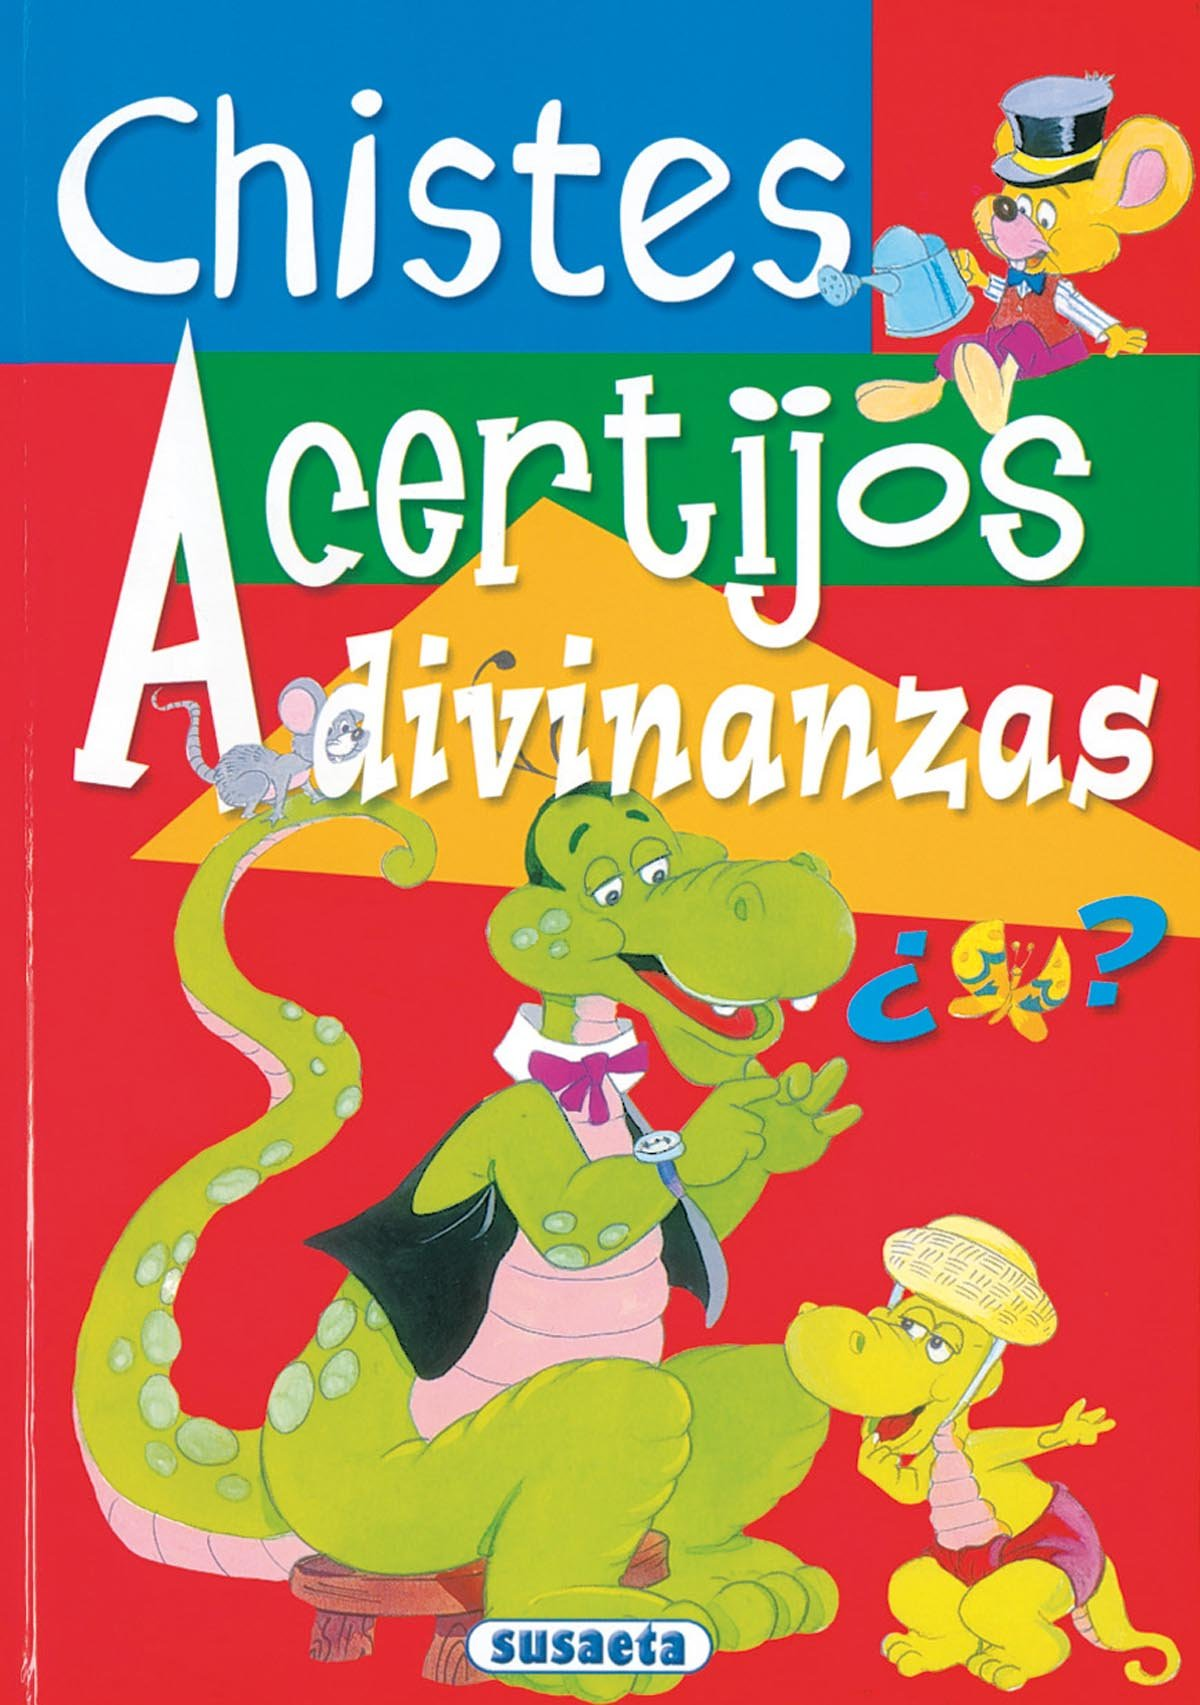 Chistes, Acertijos, Adivinanzas/Jokes, Riddles and Puzzles (Spanish Edition)